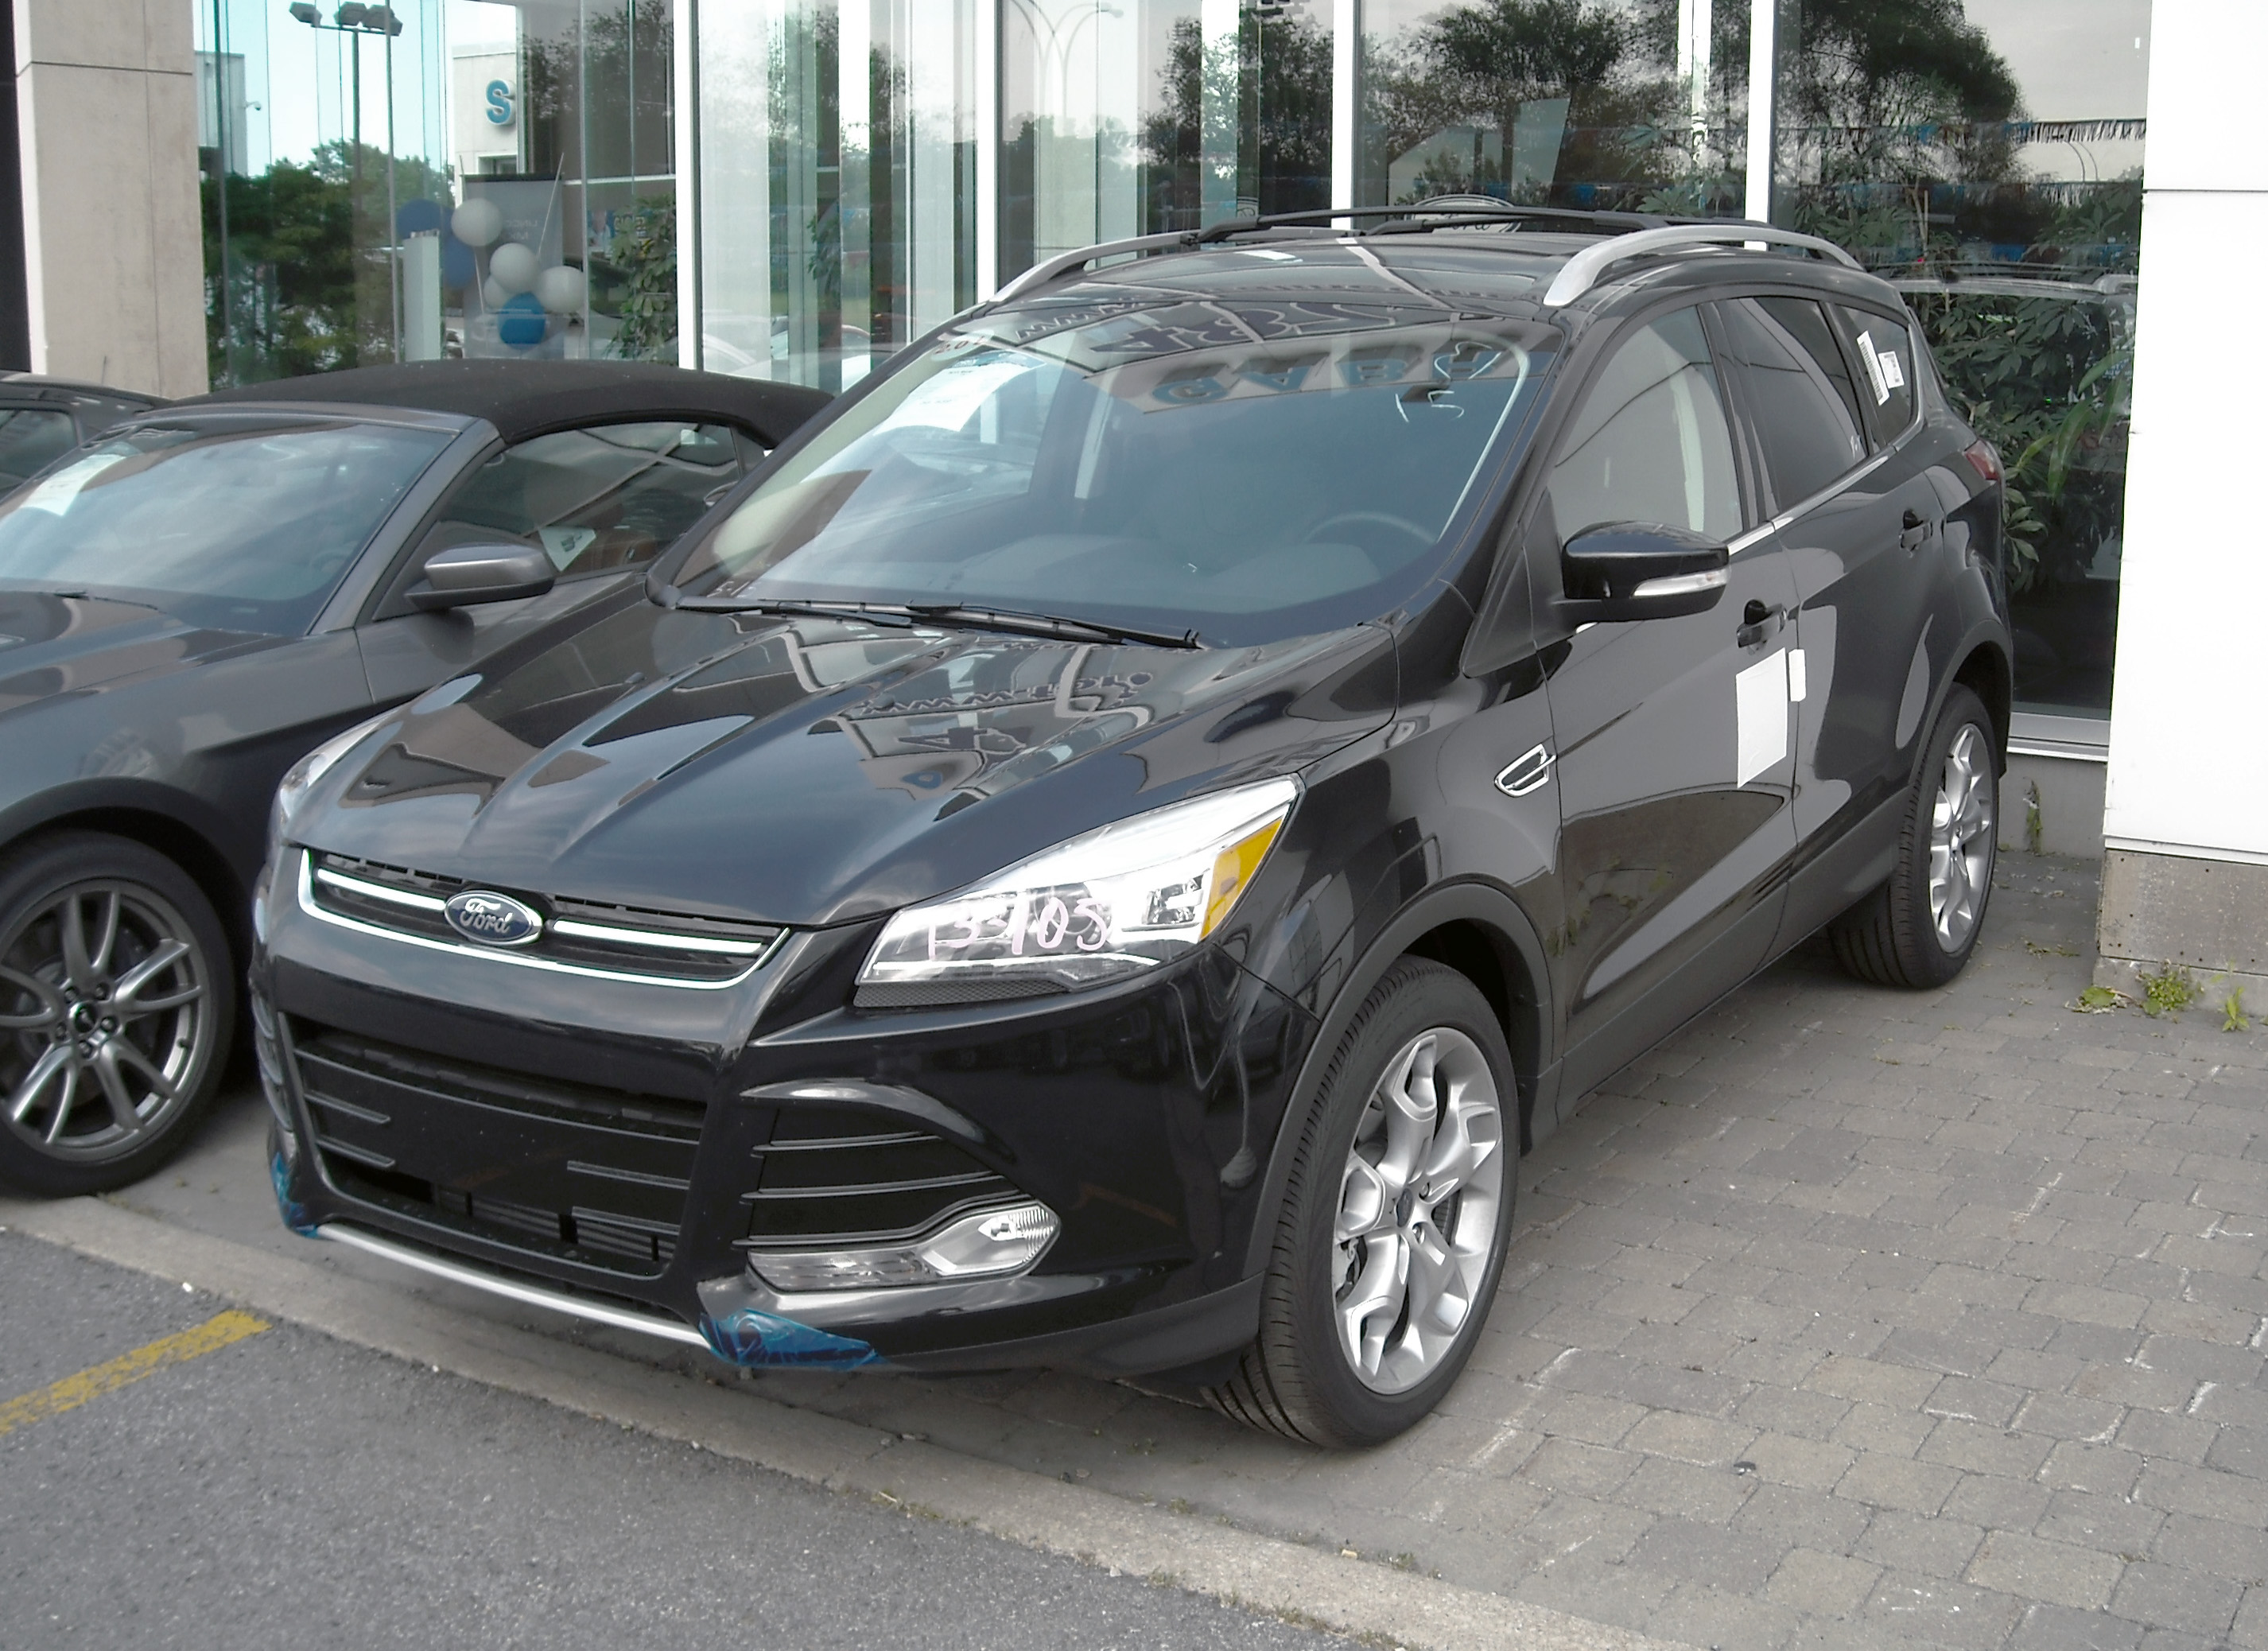 Ford Escape 2014 Custom >> File:2013 Ford Escape SL AWD.jpg - Wikimedia Commons